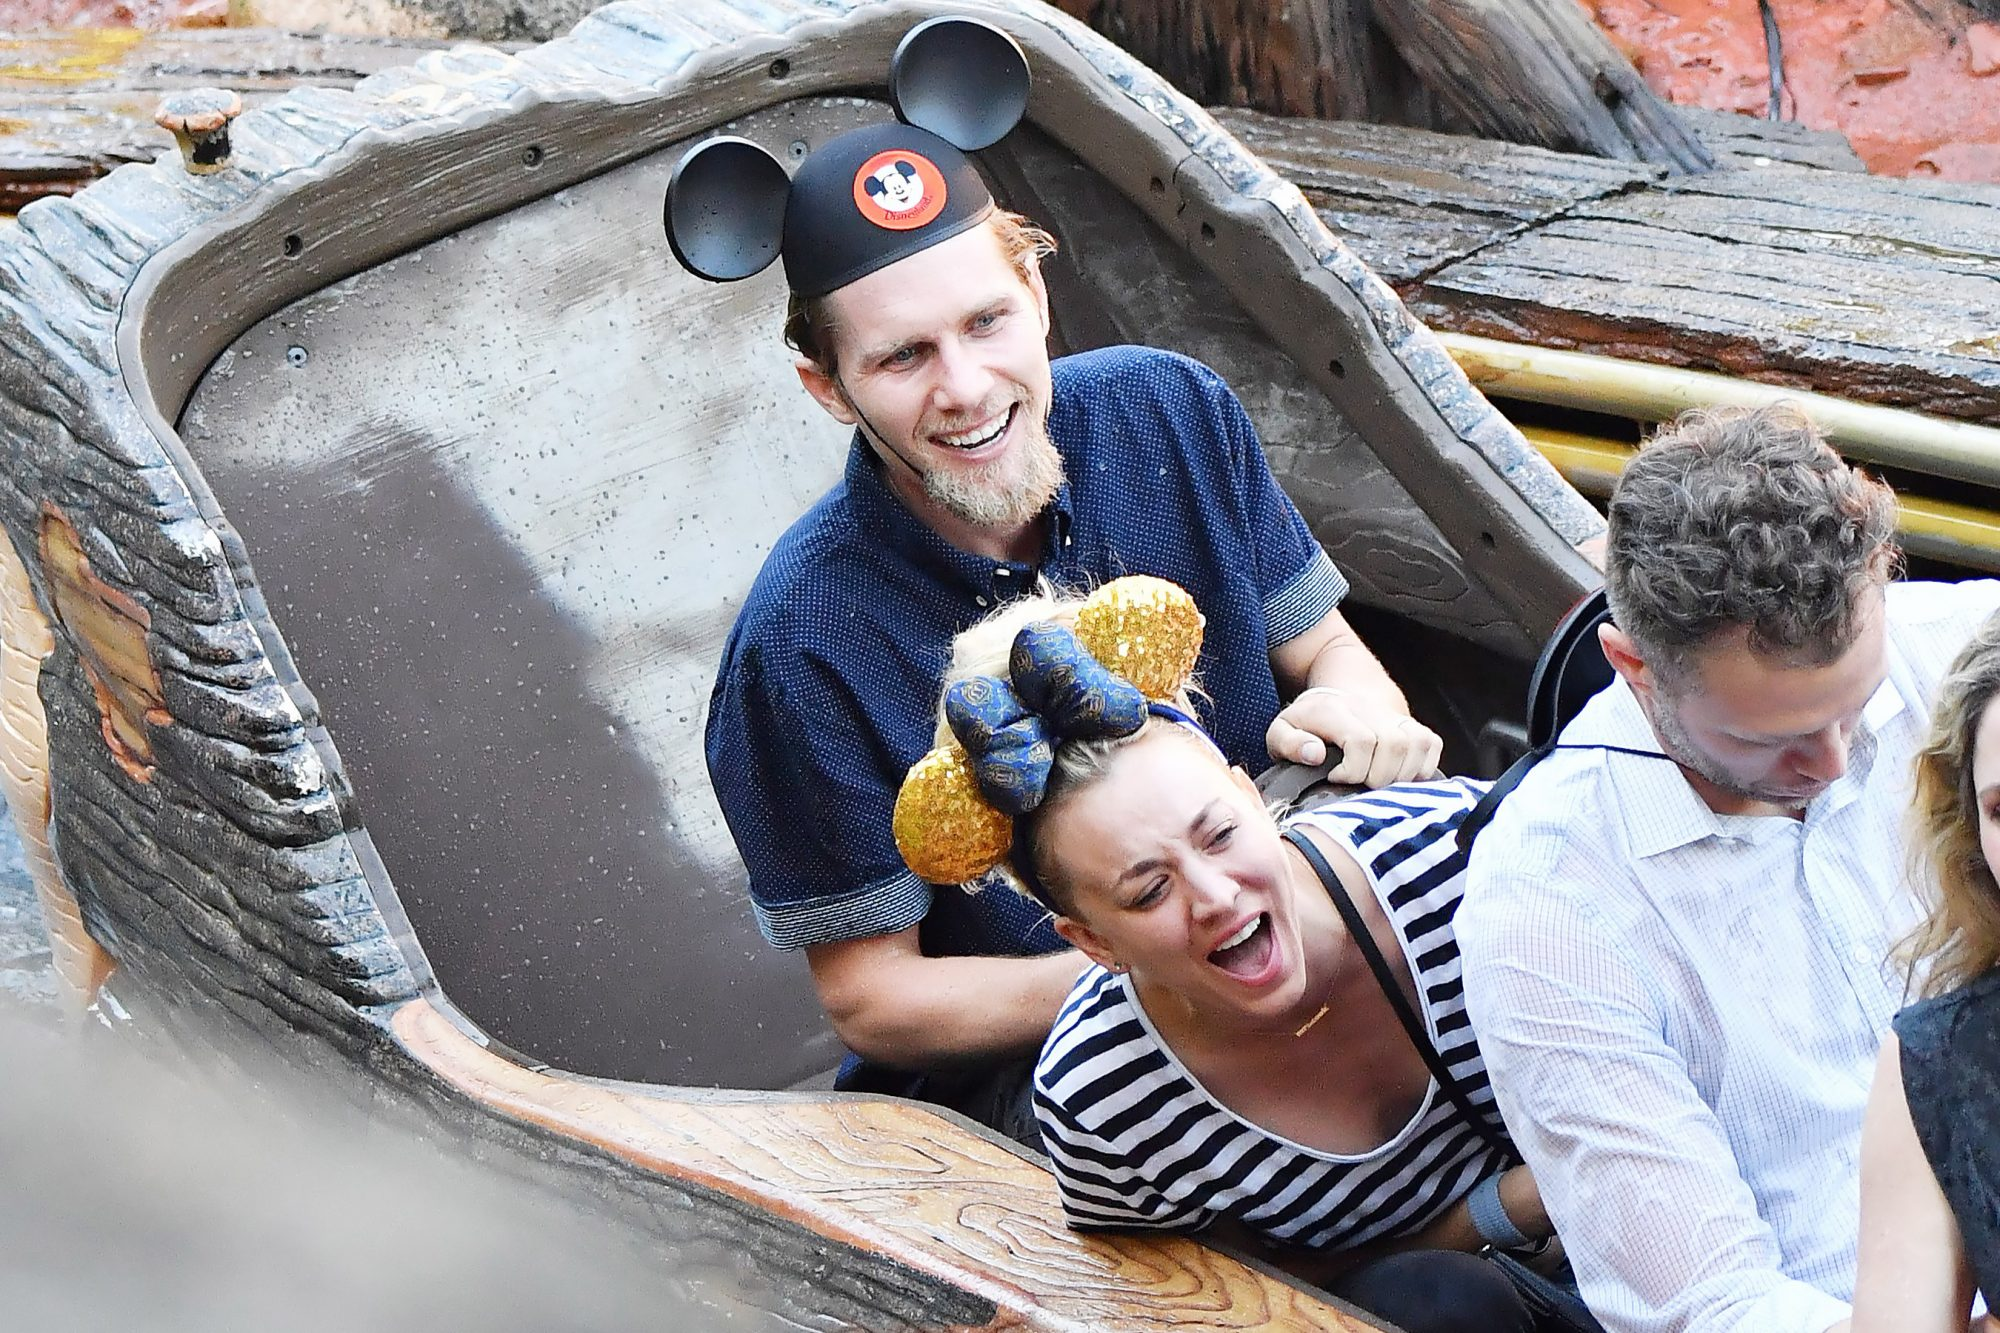 EXCLUSIVE: Kaley Cuoco celebrates her 33rd birthday at Disneyland with her husband Karl Cook